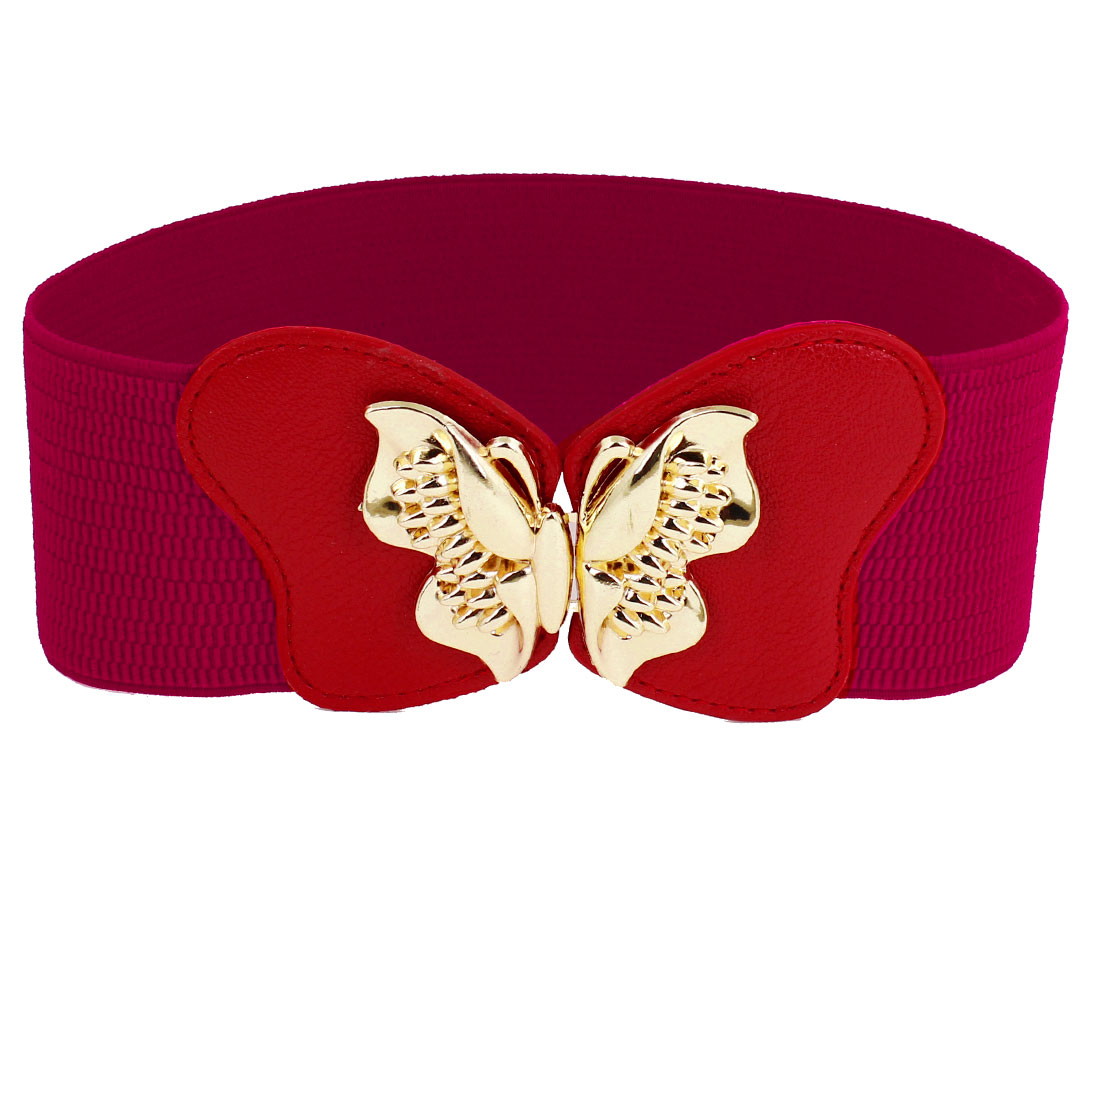 Lady Women Gold Tone Metal Butterfly Buckle Stretchy Cinch Belt Red